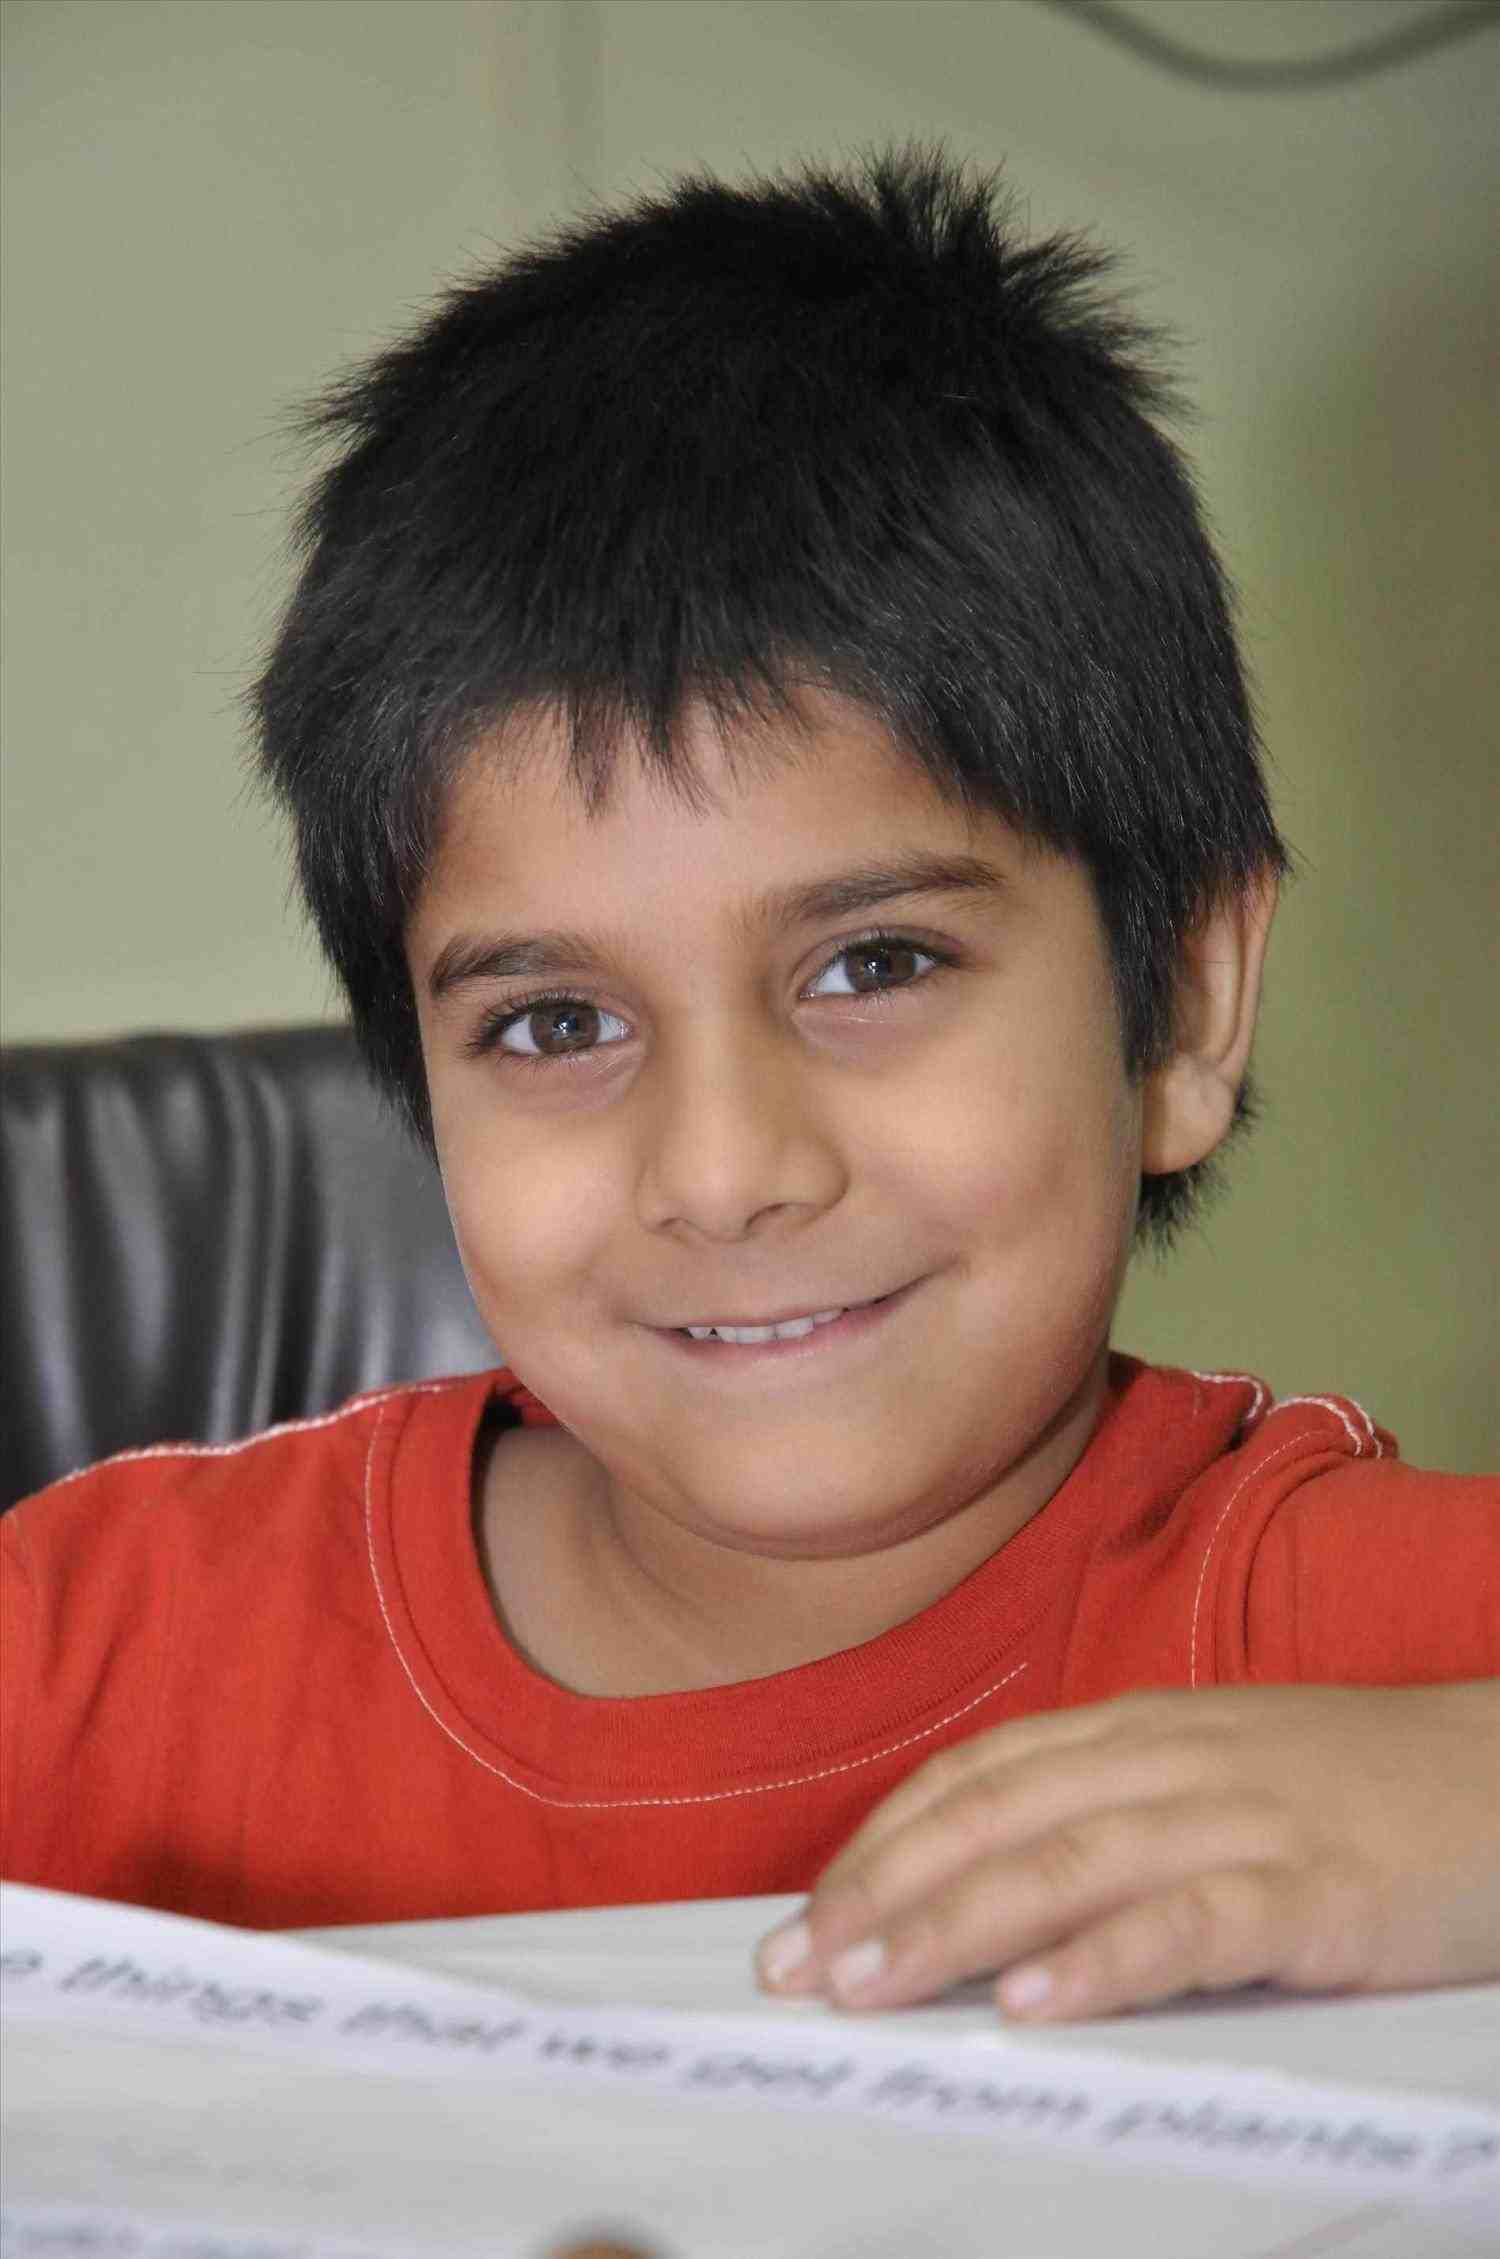 hairstyles for indian school boy | boy hairstyles, indian